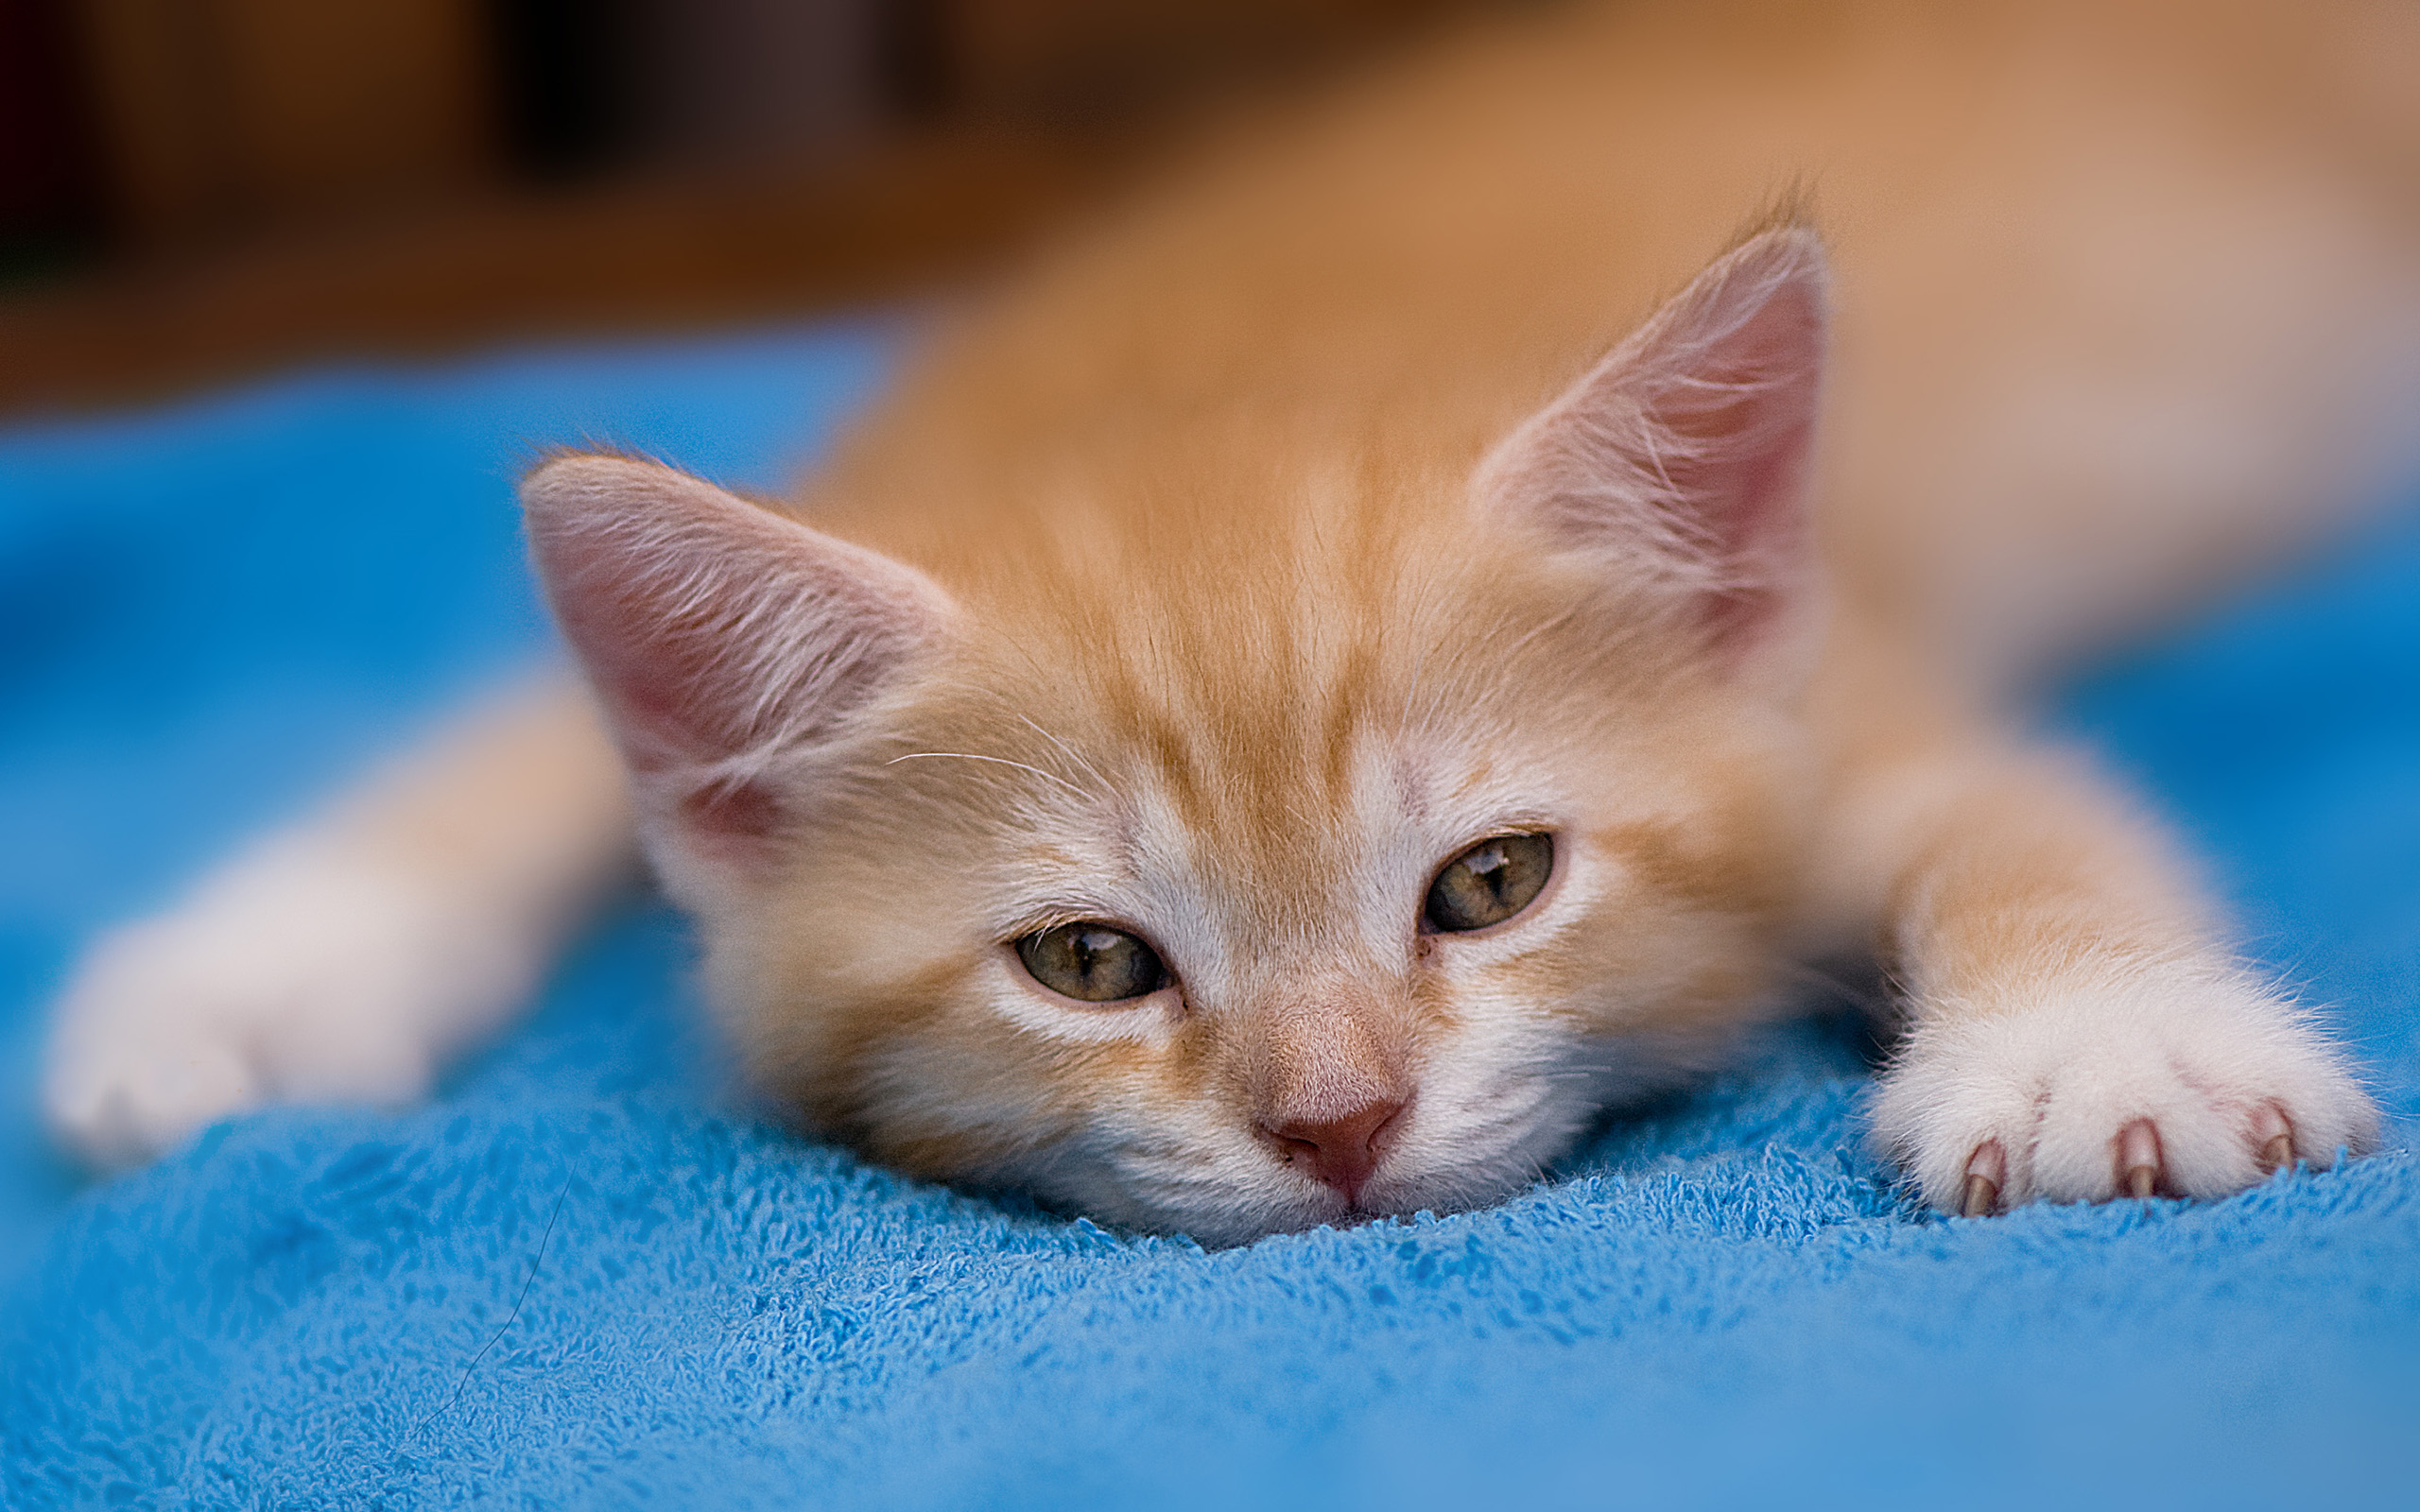 Kittens Wallpapers For Desktop Images amp Pictures   Becuo 2560x1600